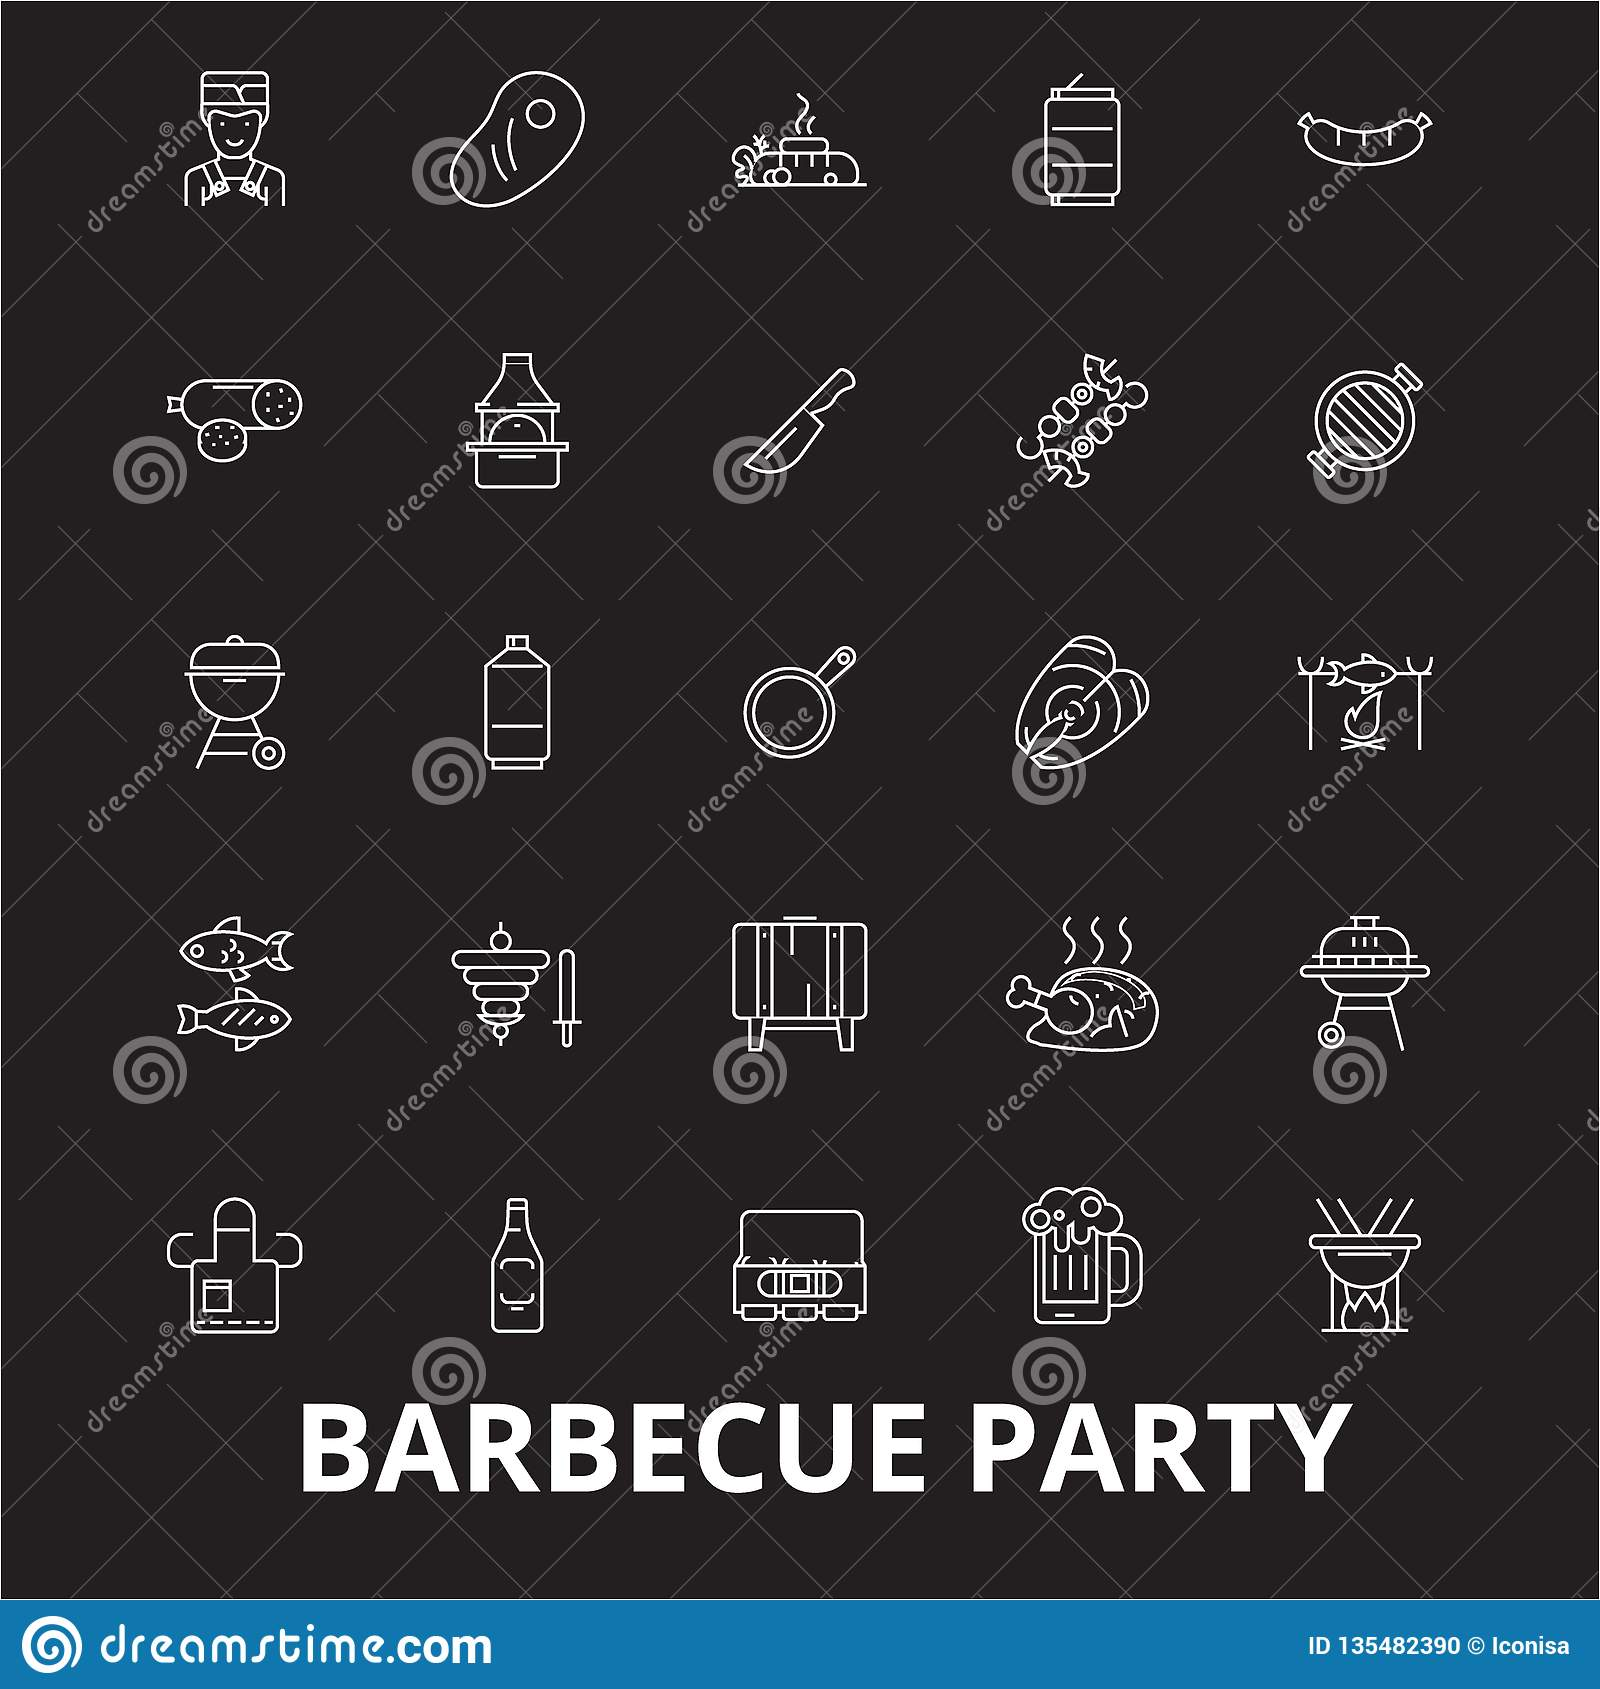 Barbecue party editable line icons vector set on black background. Barbecue party white outline illustrations, signs